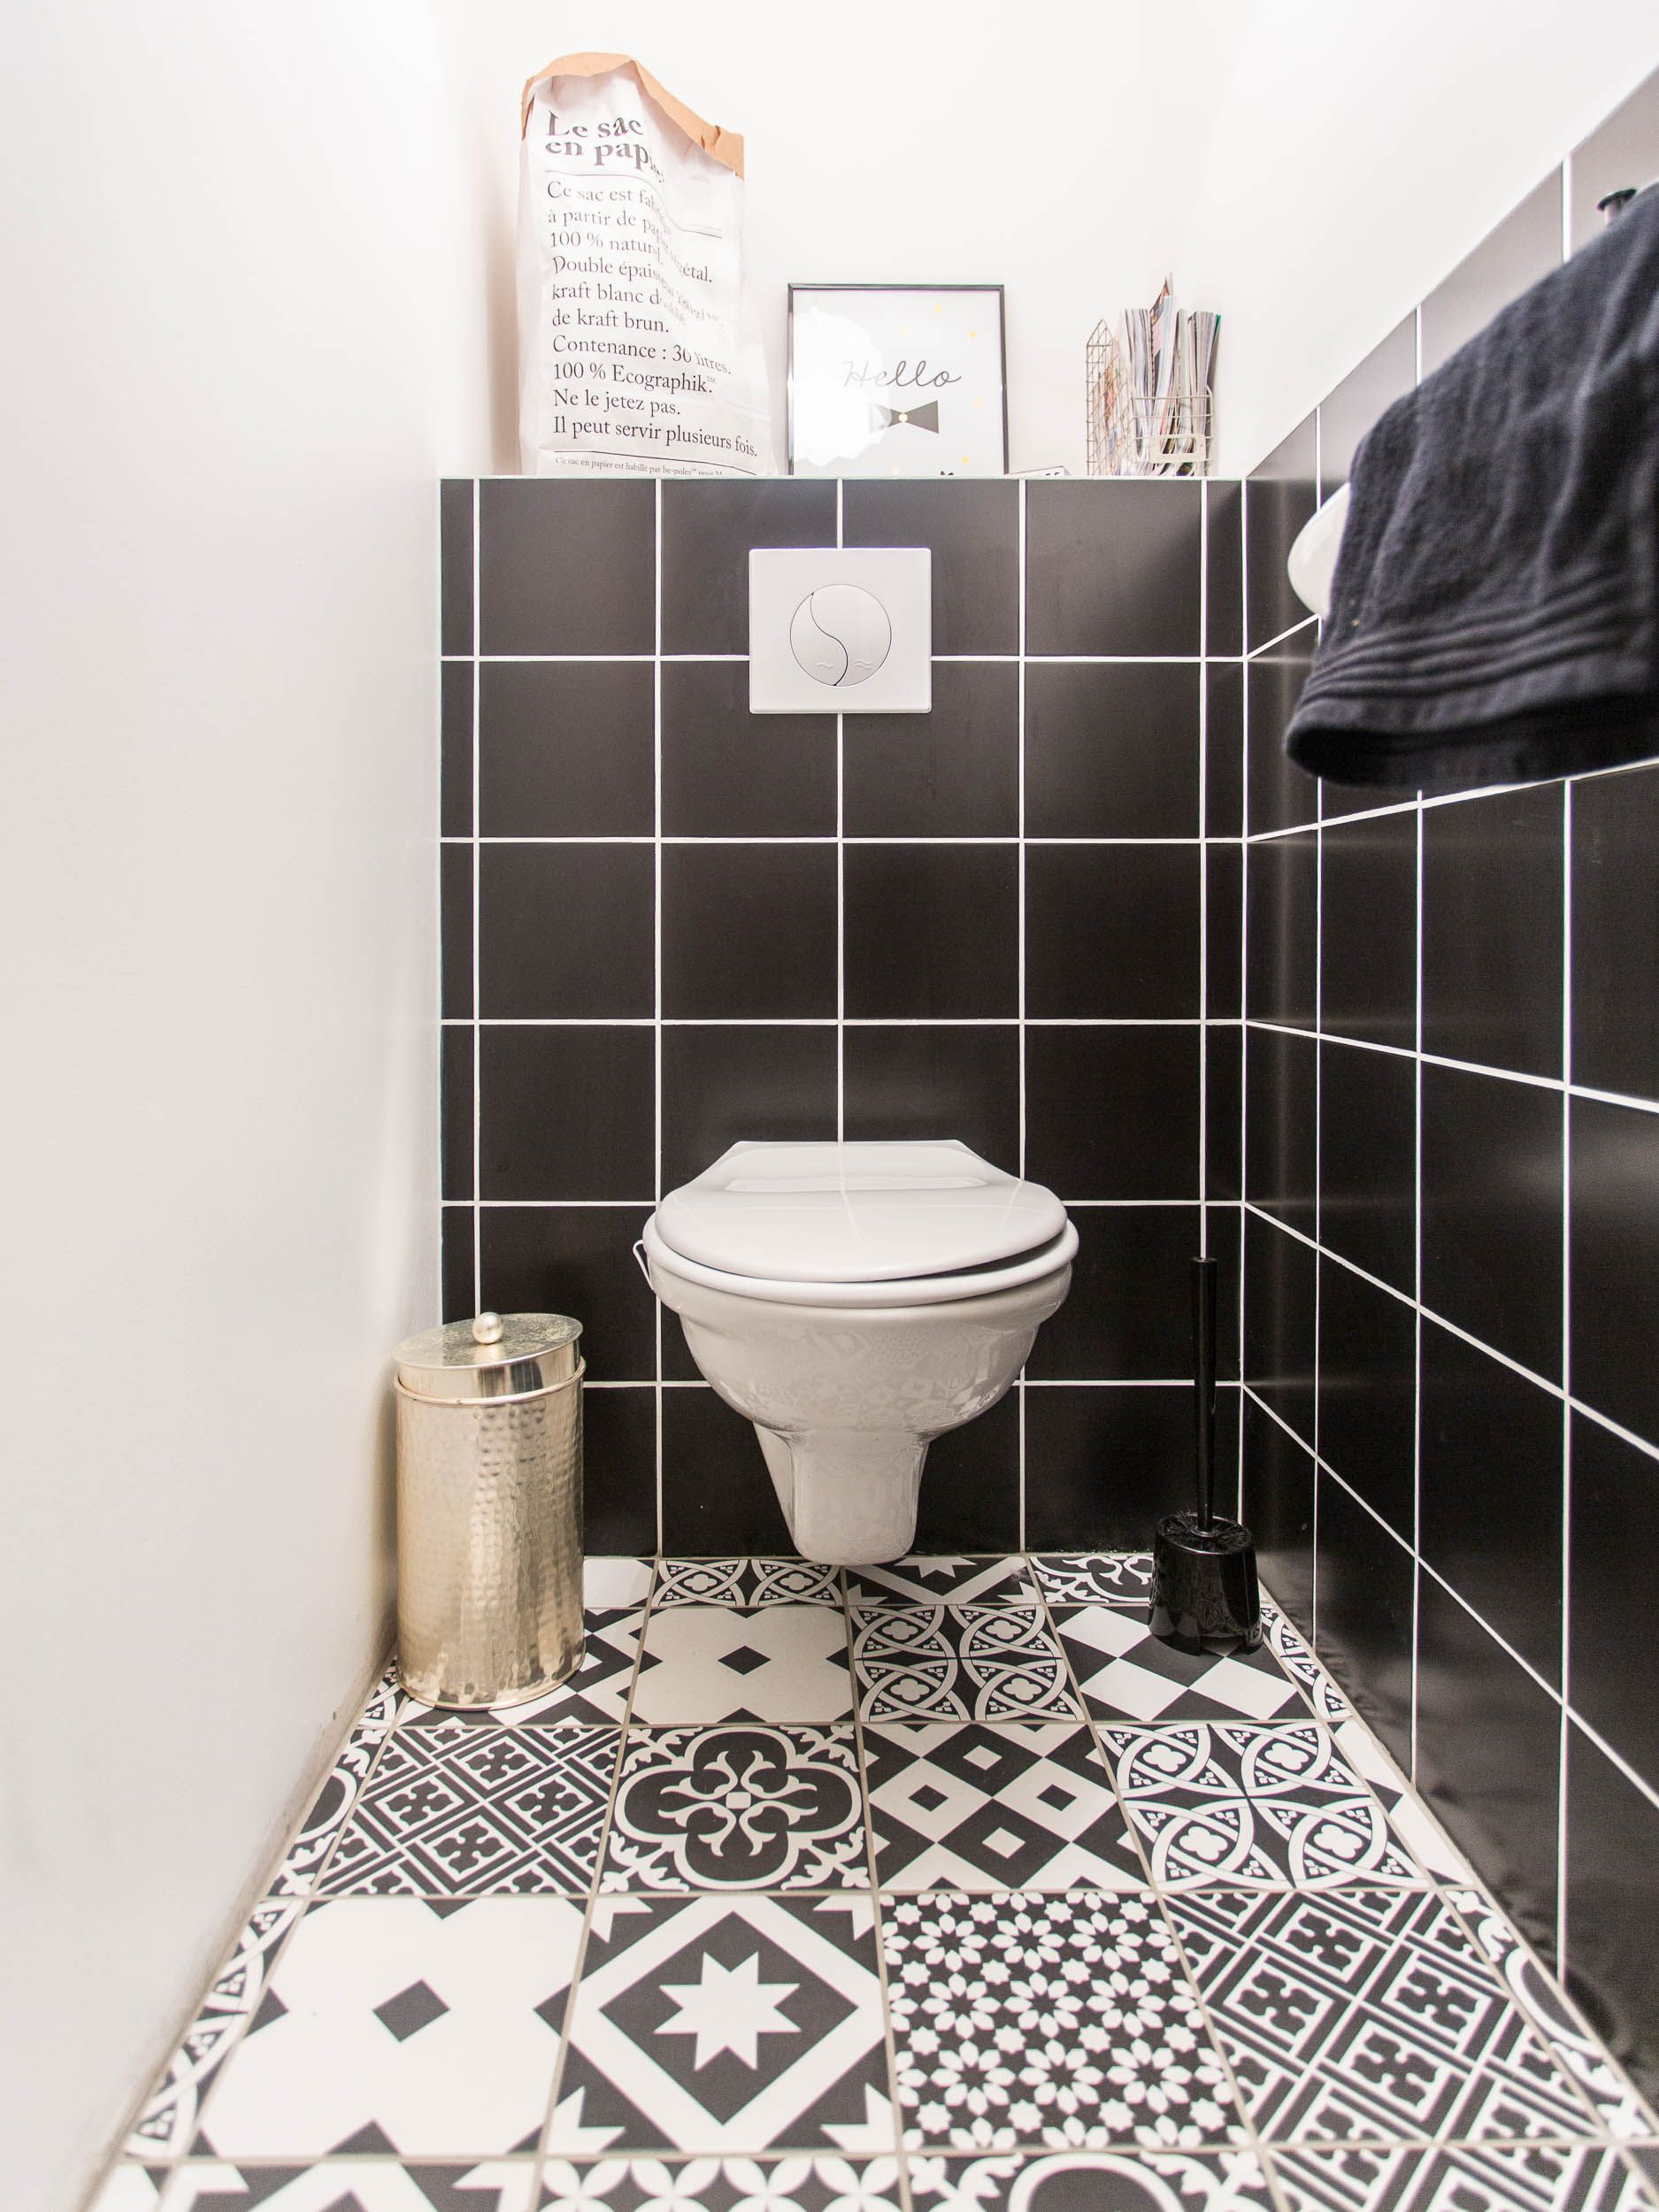 Jolie d coration de toilettes par marc antoine for Carrelage kaki